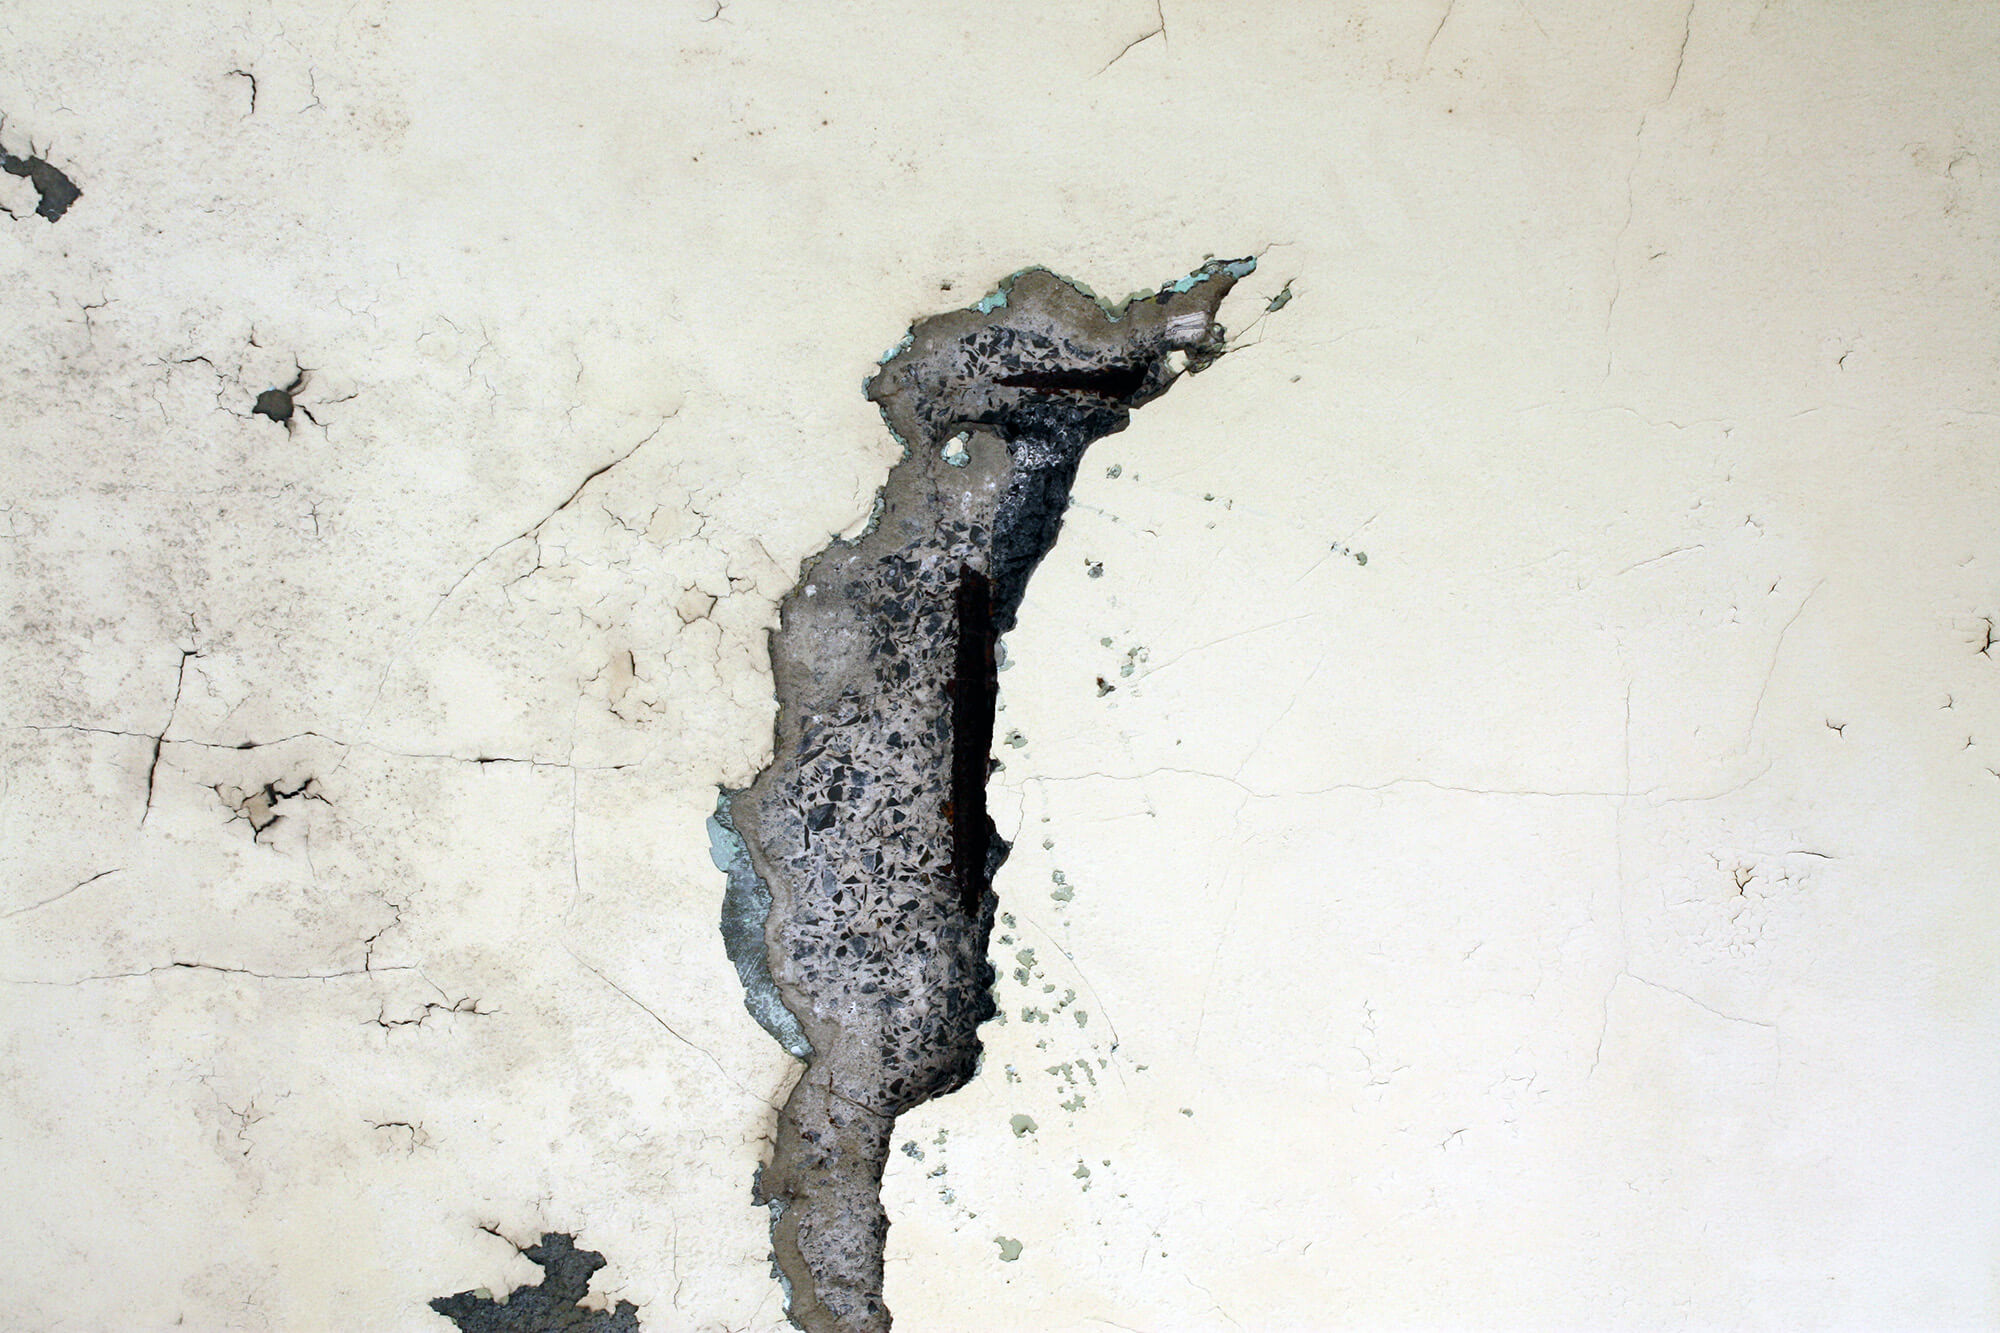 Damaged Wall 2 - Concrete Cancer - Remedial Building Services